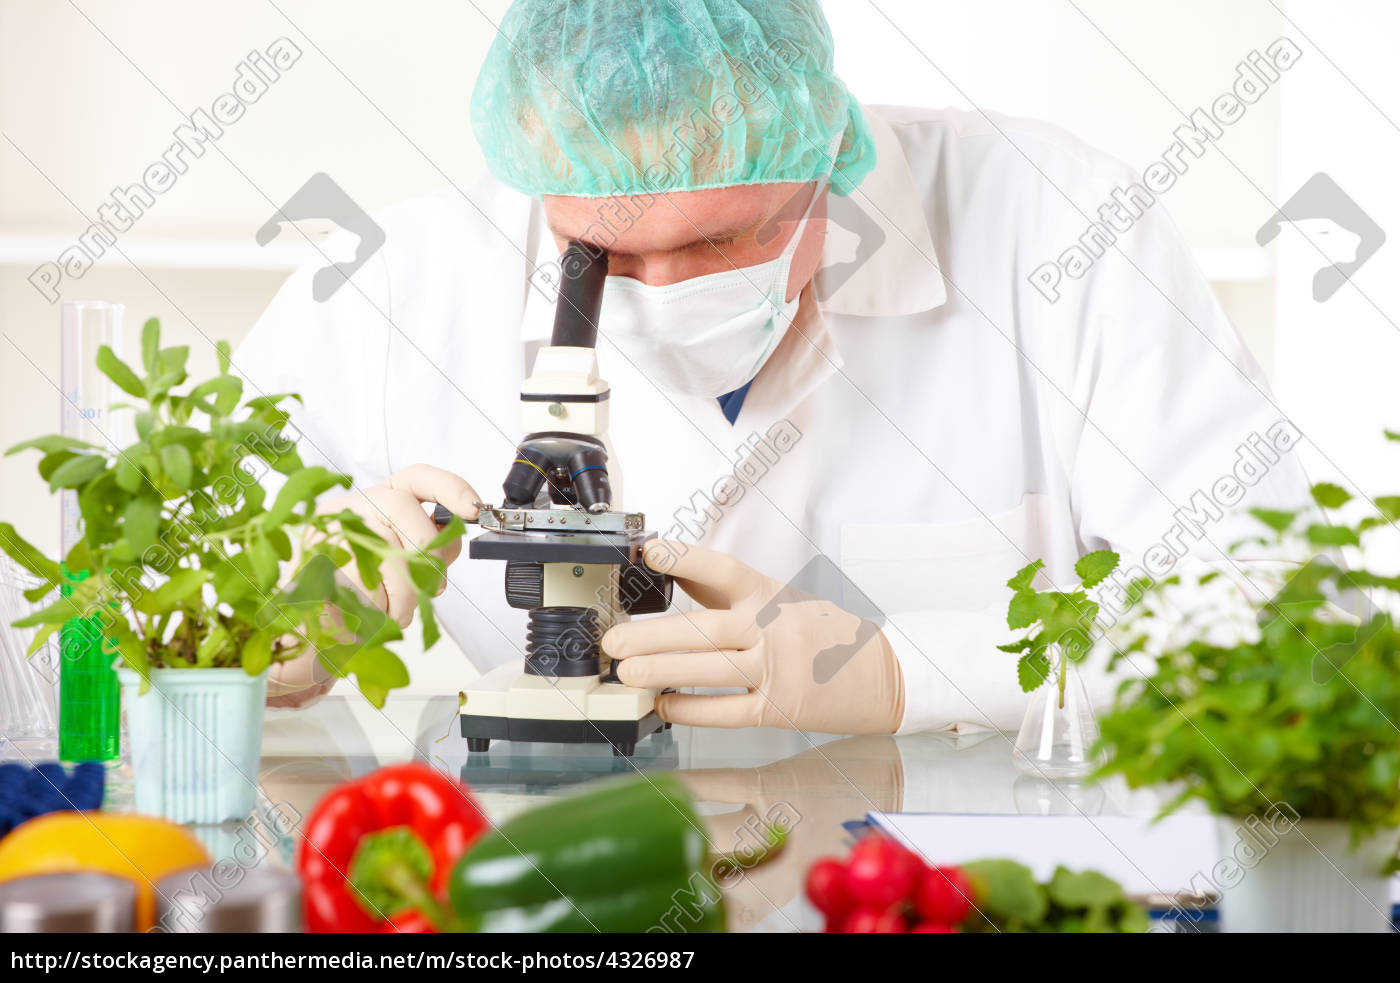 researcher, holding, up, a, gmo, vegetable - 4326987